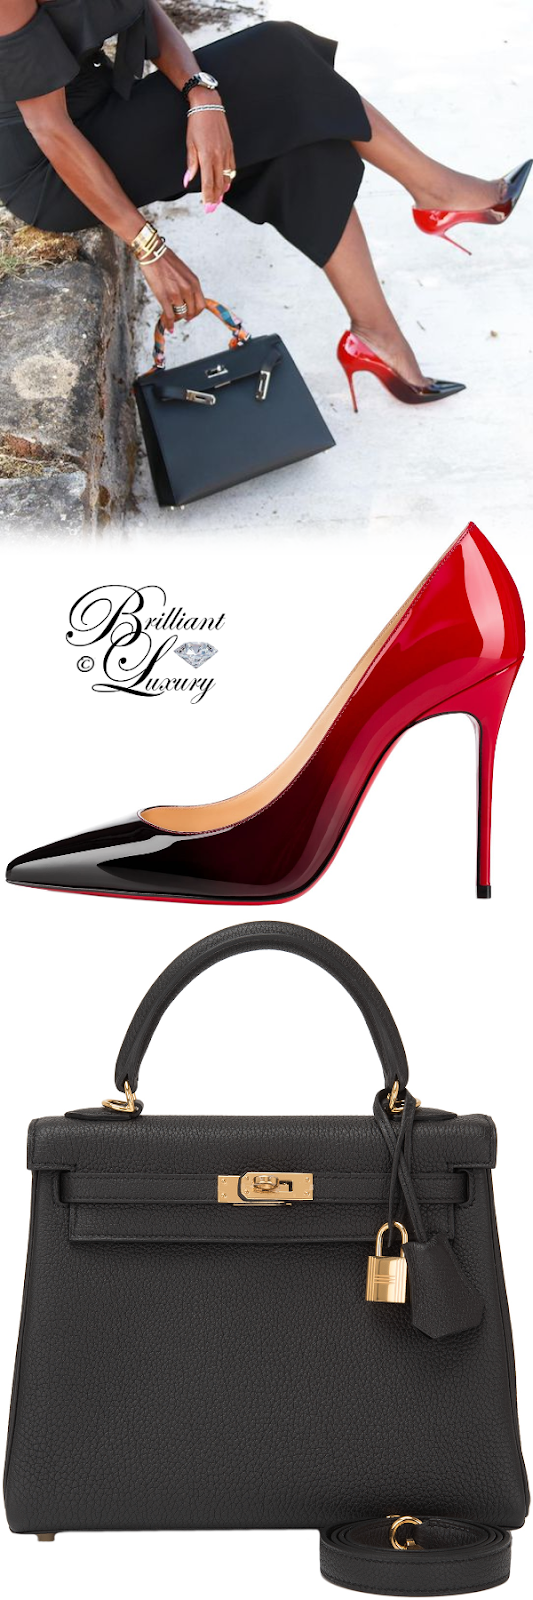 Brilliant Luxury ♦ Christian Louboutin Decolleté pumps #red and Hermès Kelly bag #black #streetstyle